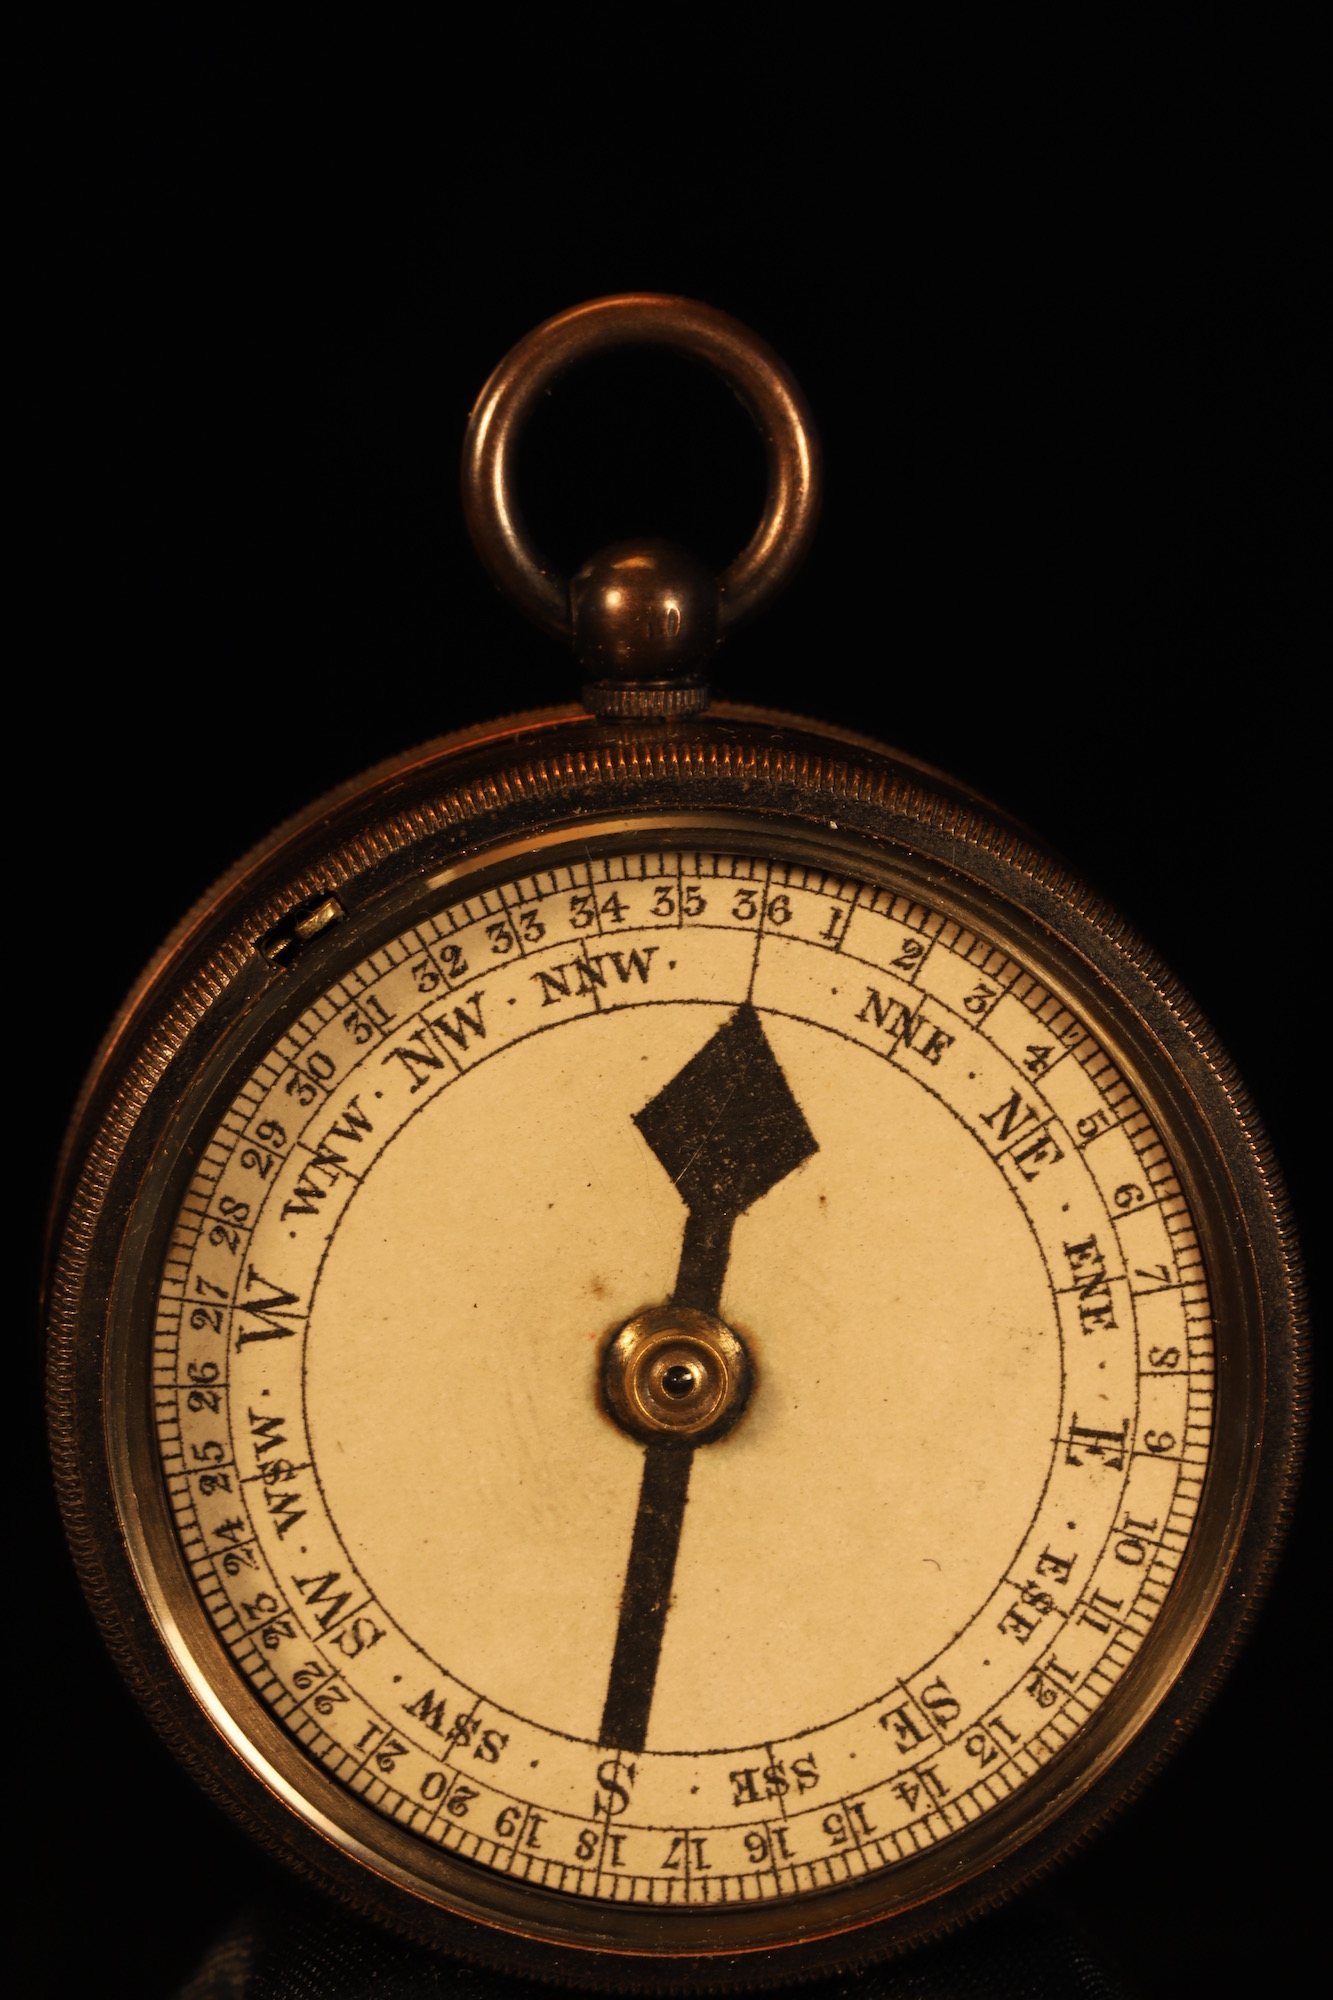 Image of Negretti & Zambra Pocket Barometer Compendium No 20068 c1905